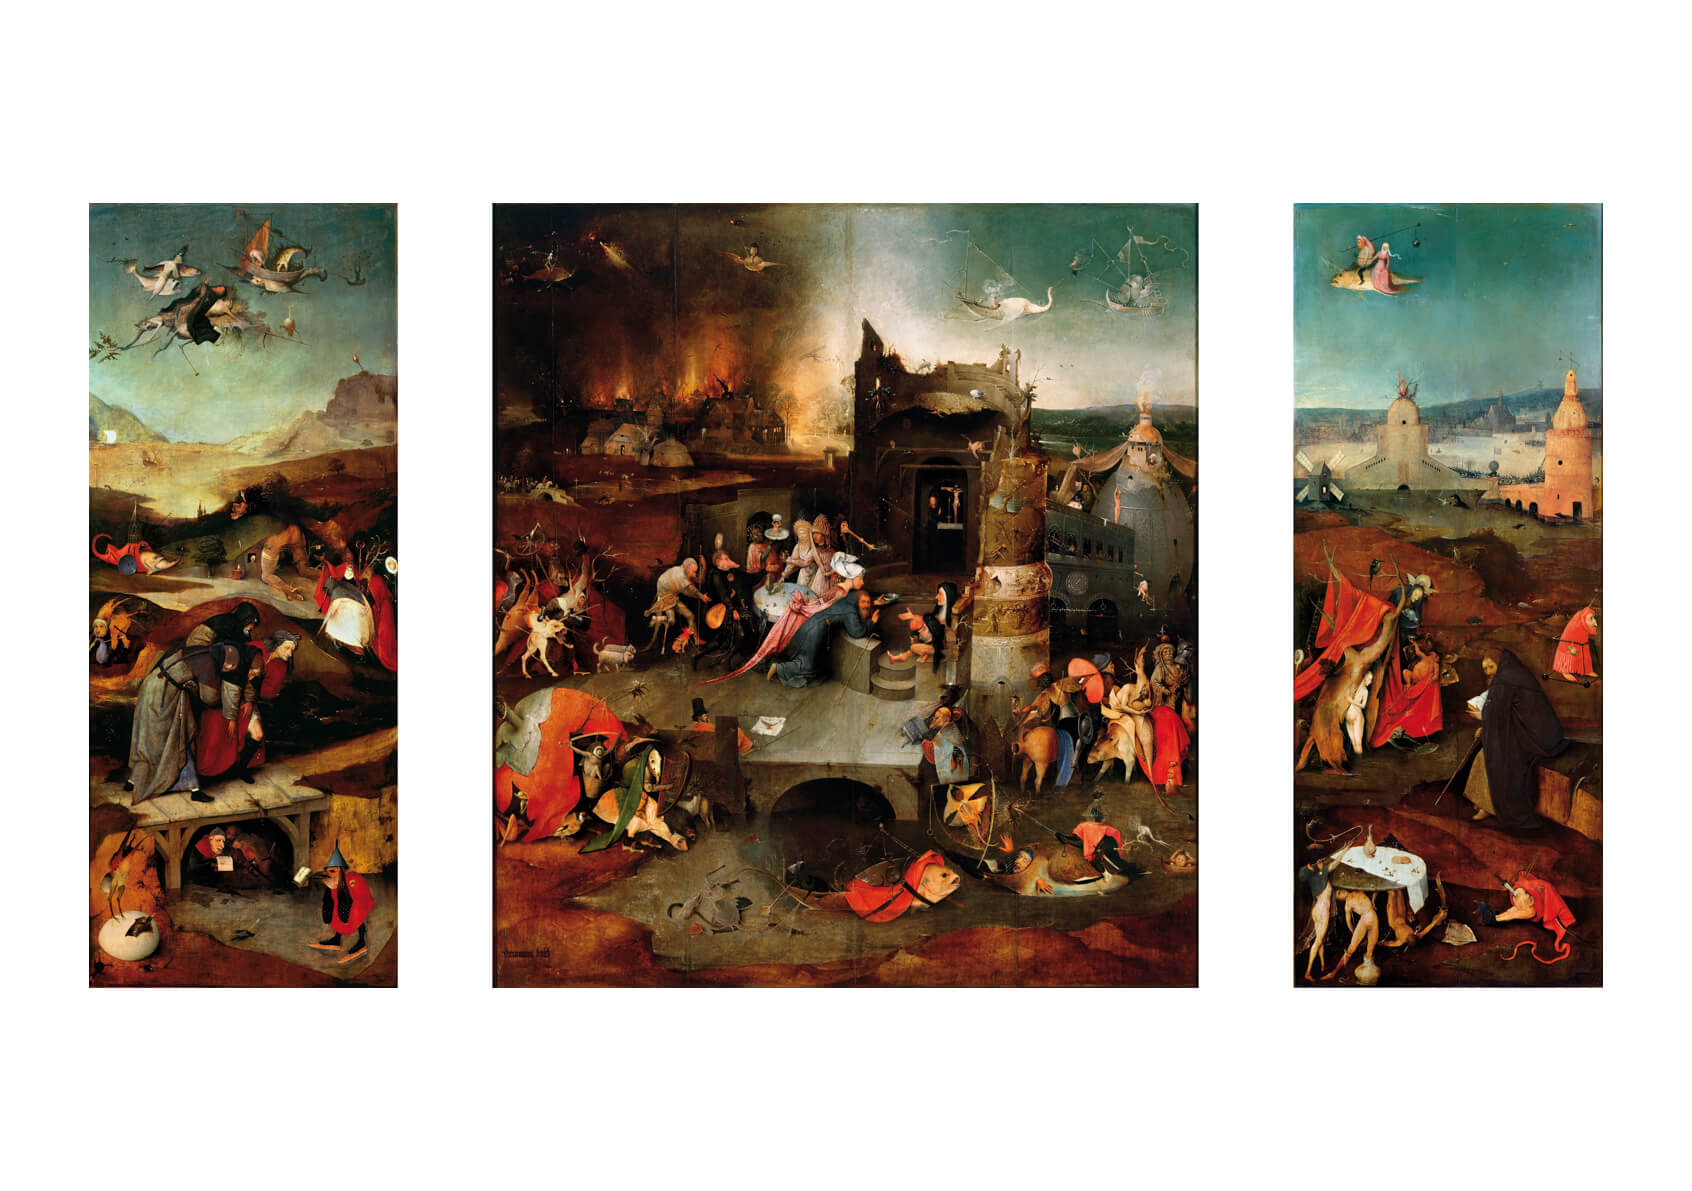 Hieronymus Bosch - Temptation of Saint Anthony